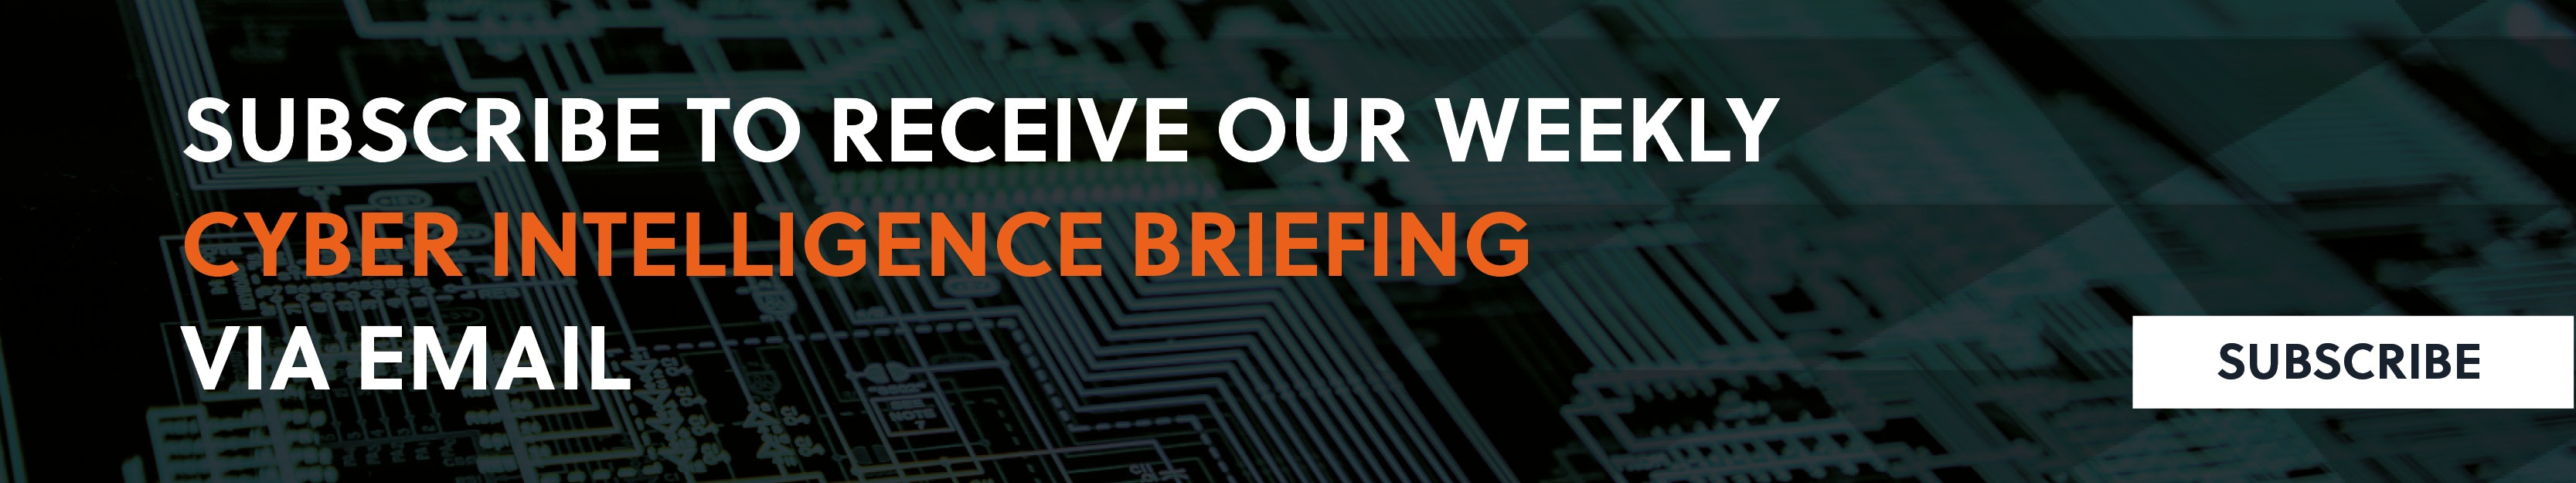 SUBSCRIBE TO RECEIVE OUR WEEKLY CYBER THREAT INTELLIGENCE BRIEFING VIA EMAIL